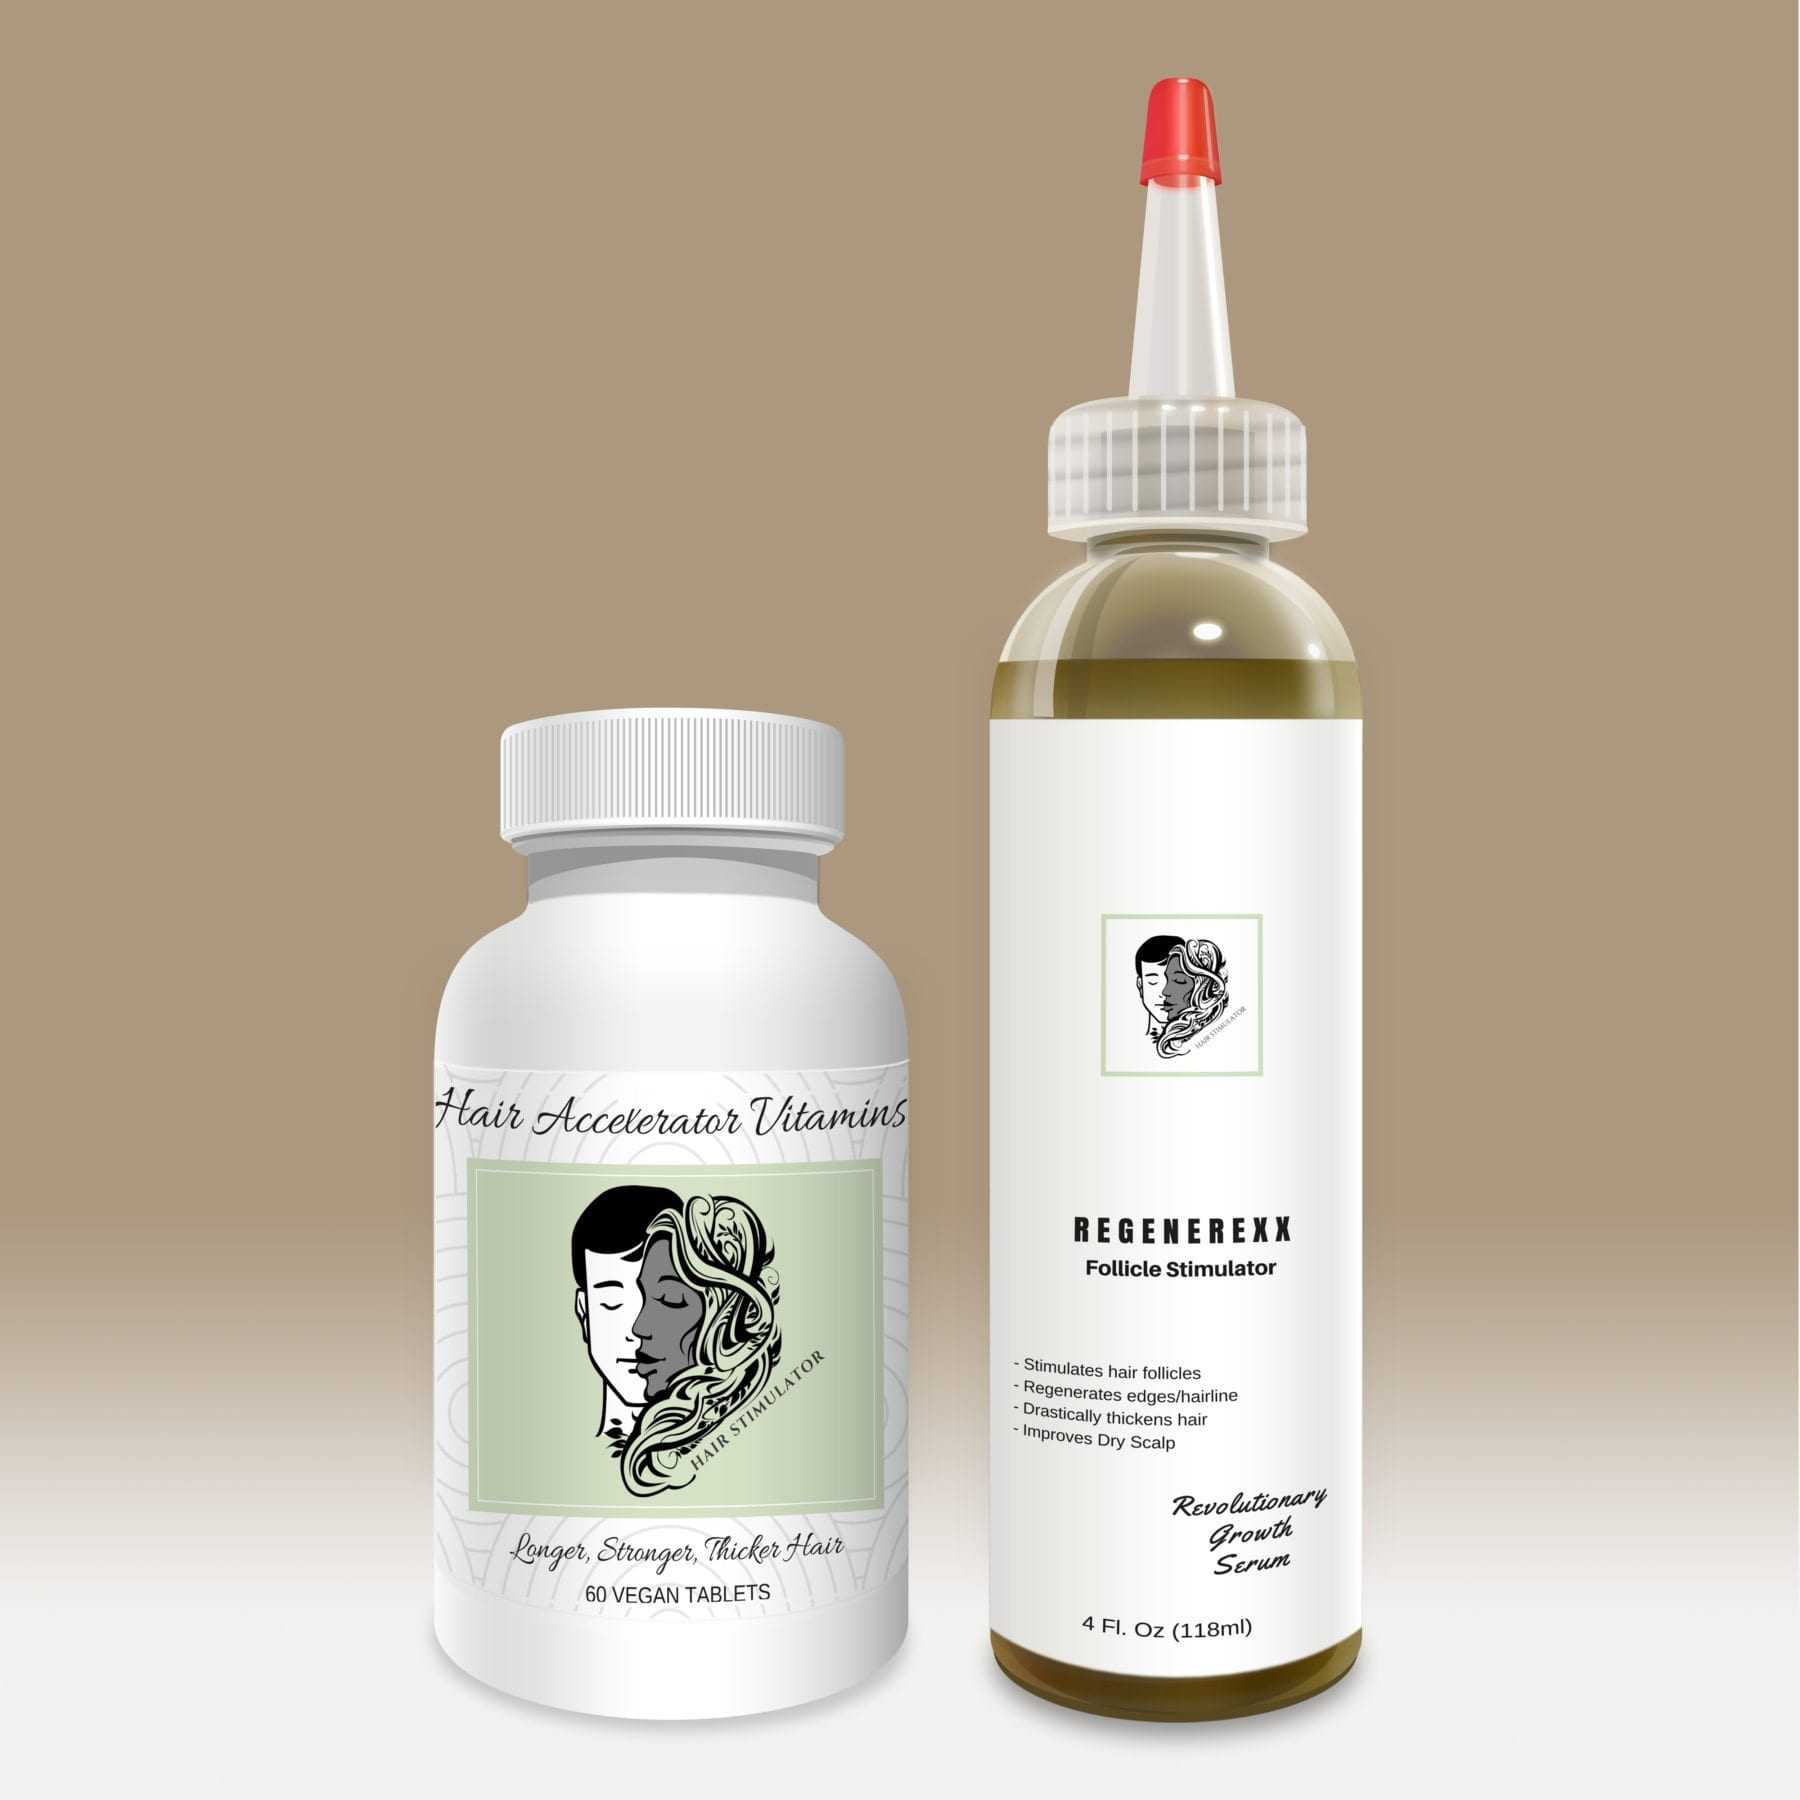 Hair Accelerator Vitamins and Regenerexx Kit